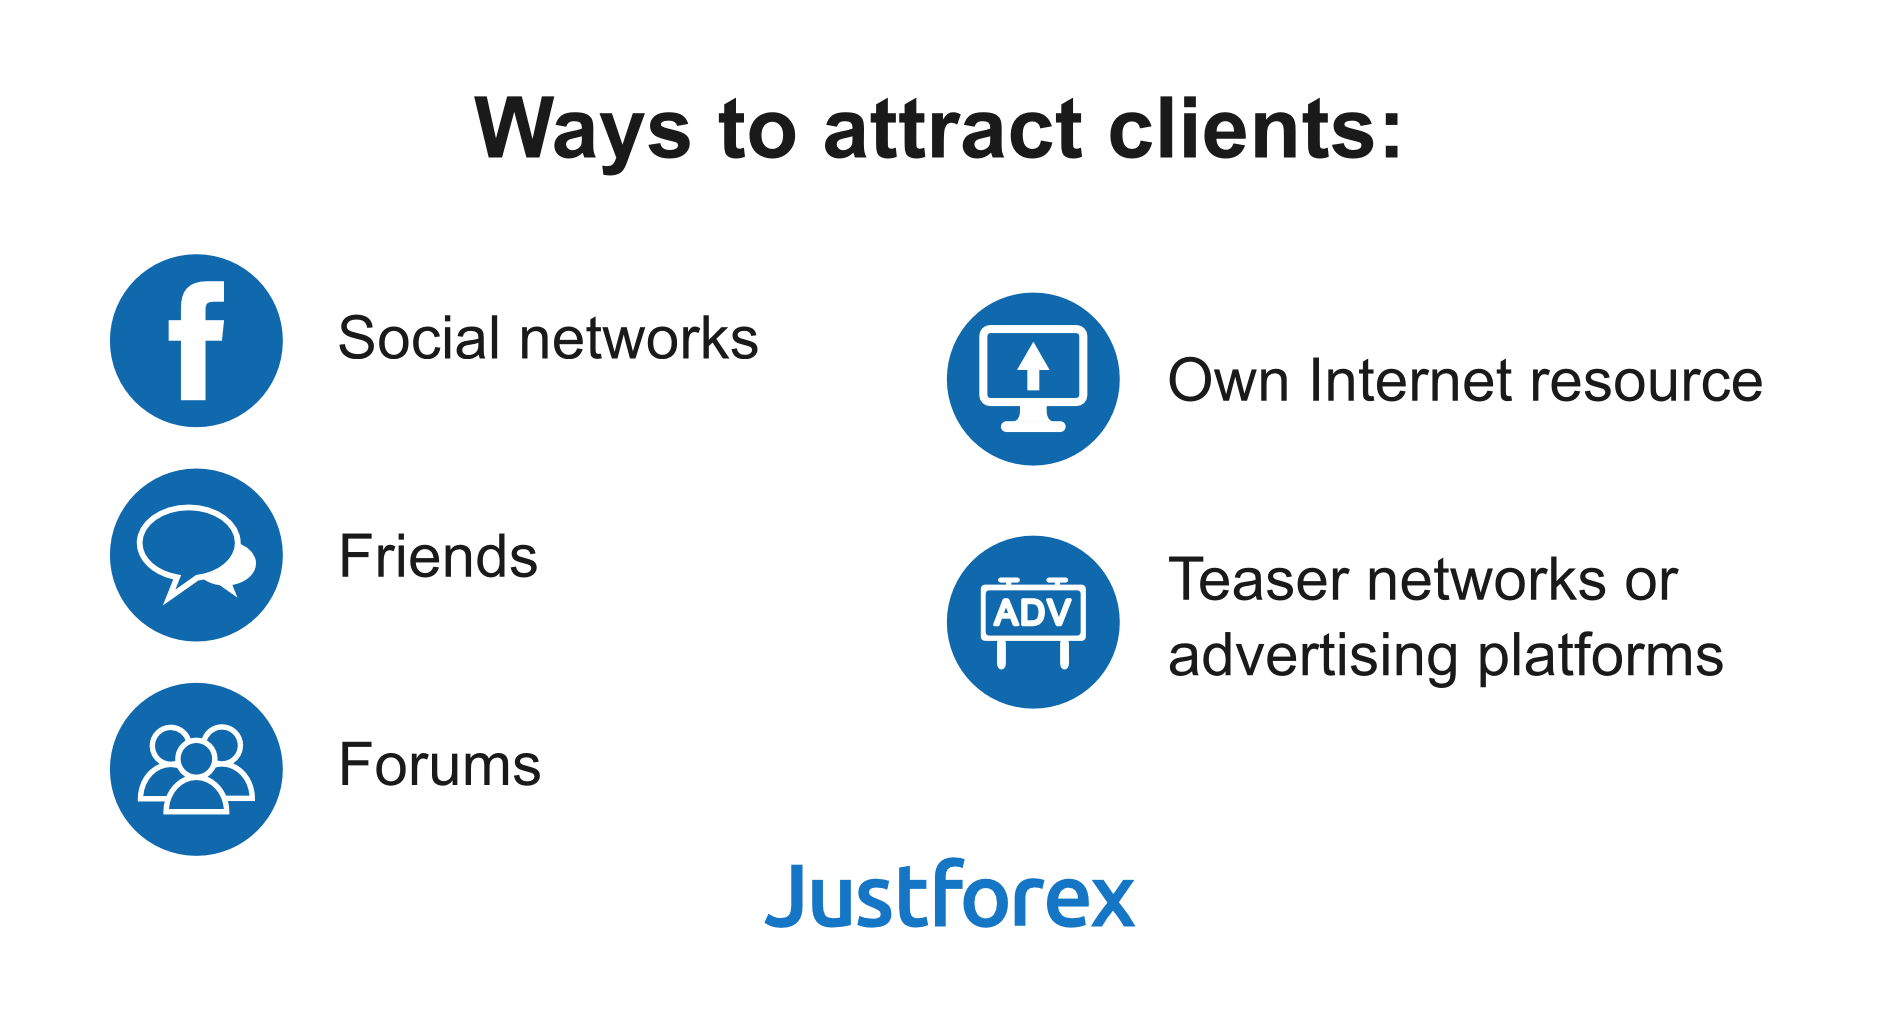 How to attract the clients